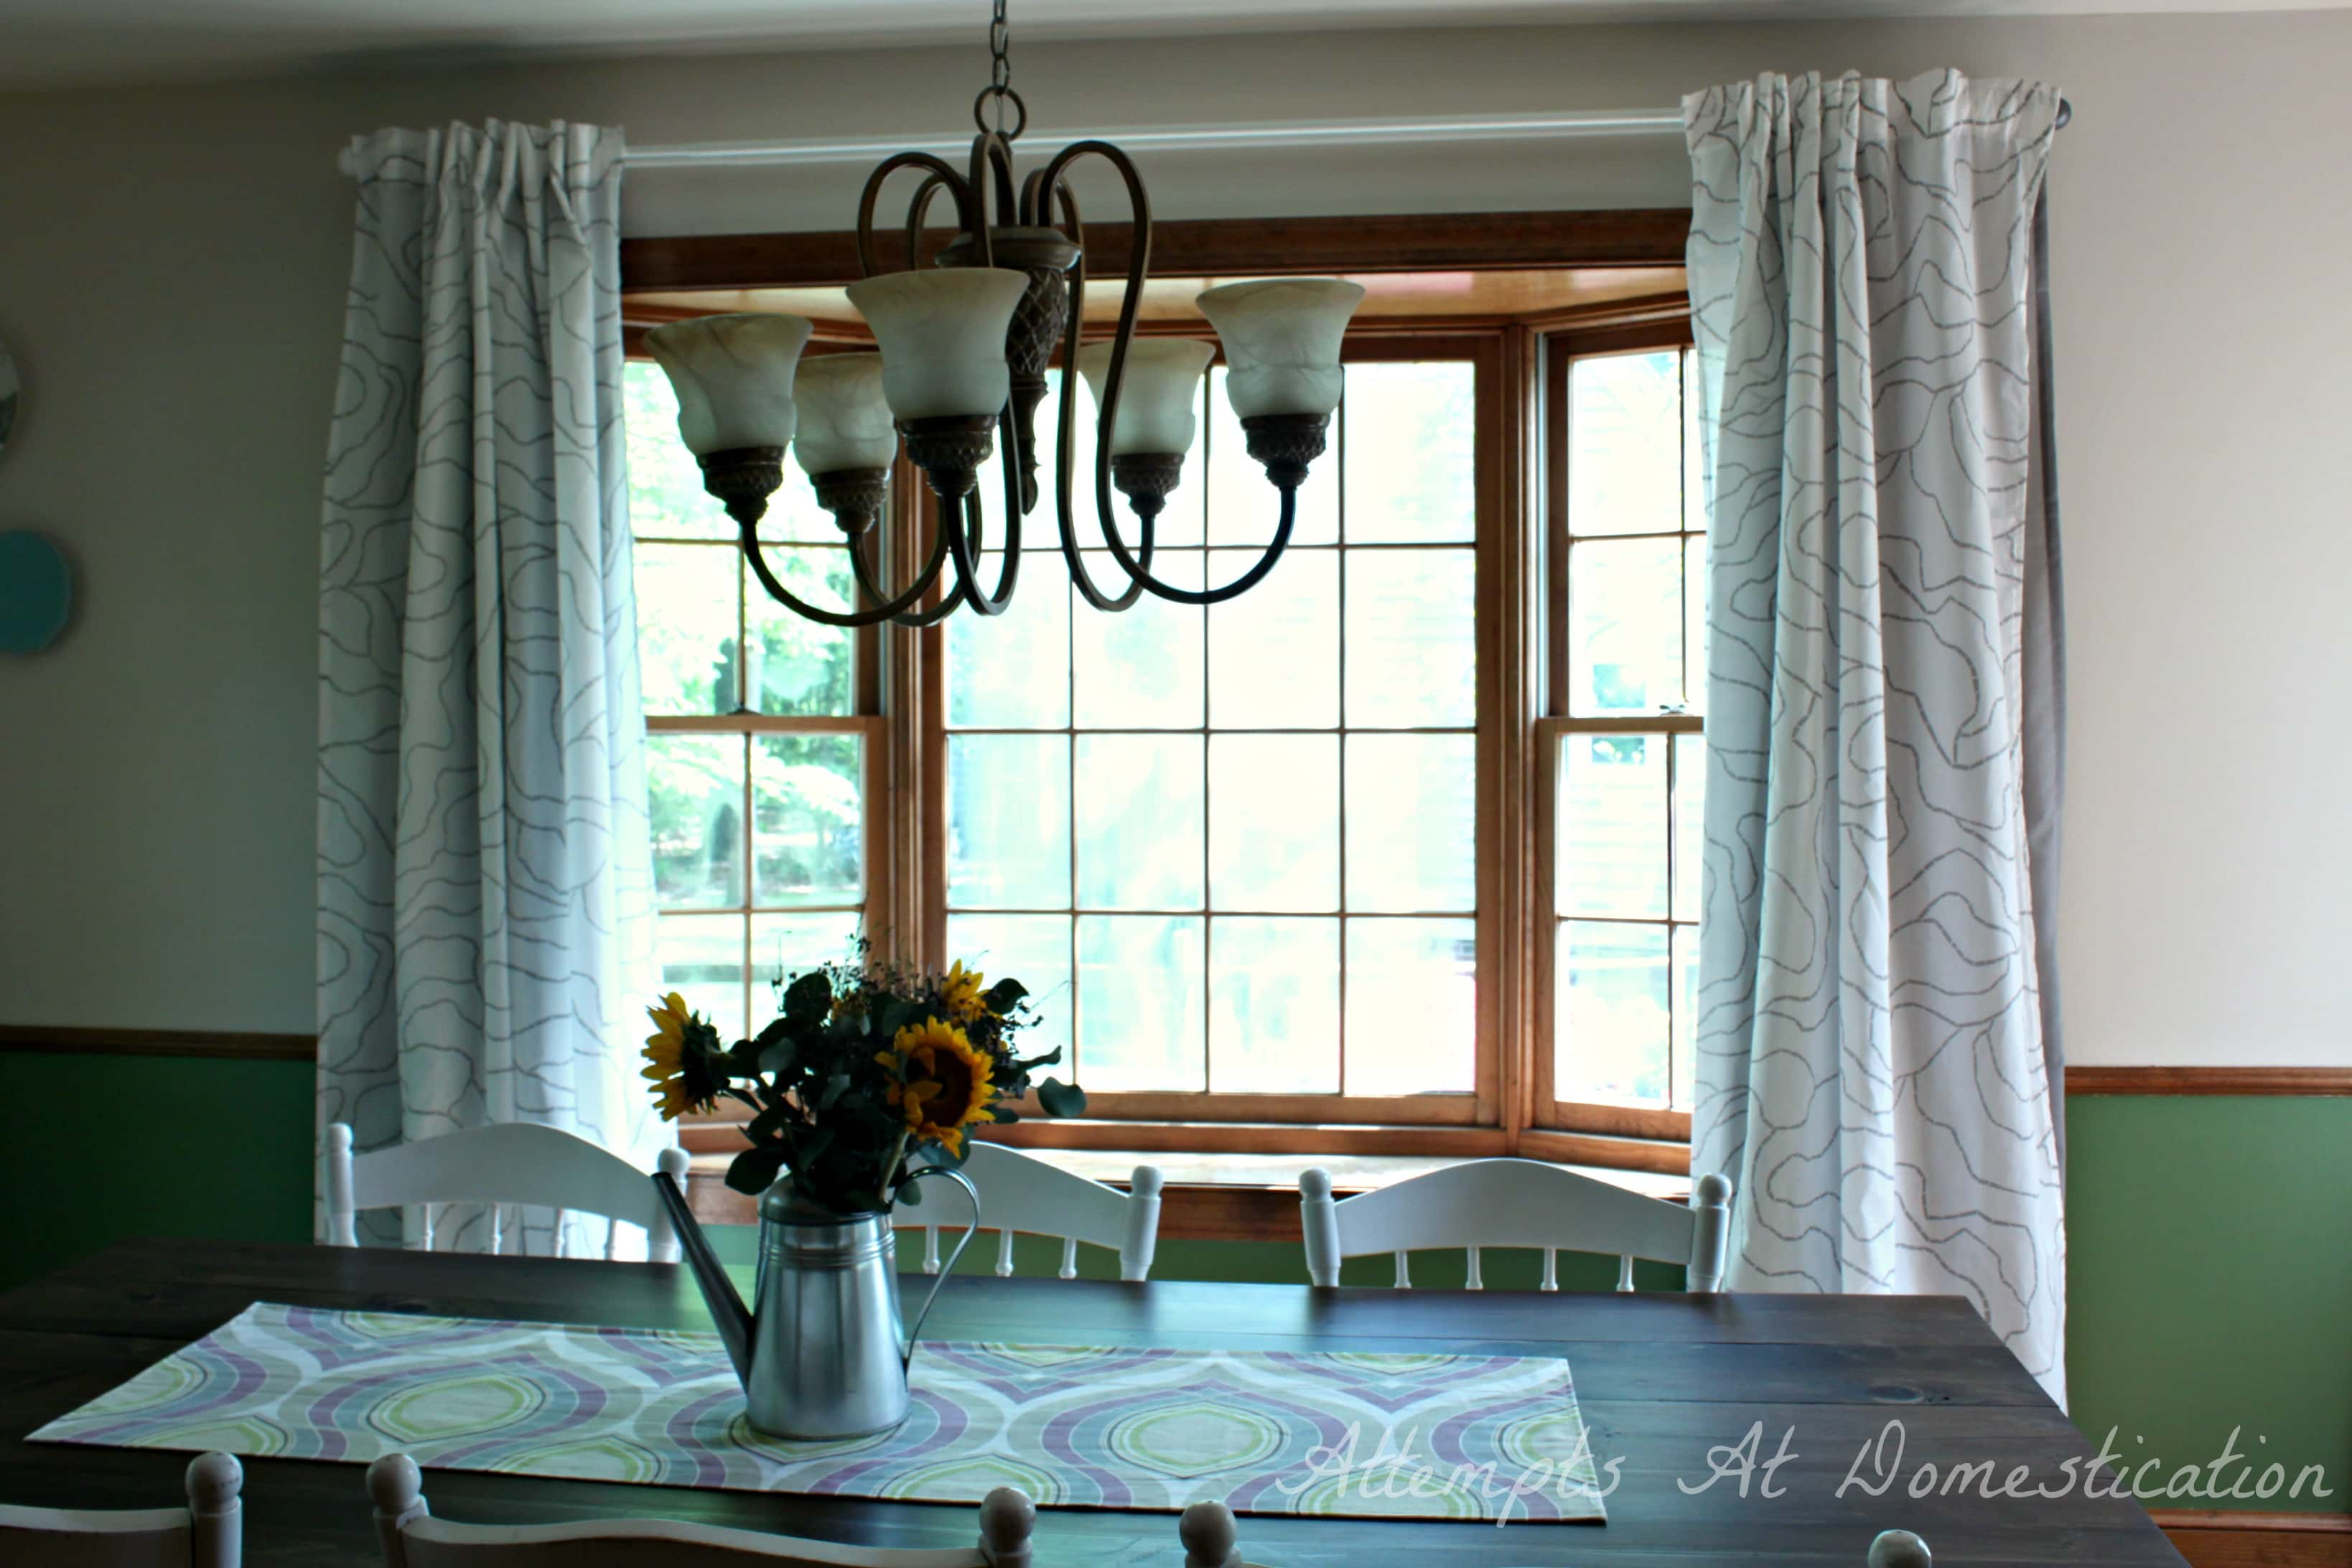 Wonderful Dining Room Bay Window Curtains 3276 x 2184 · 1137 kB · jpeg